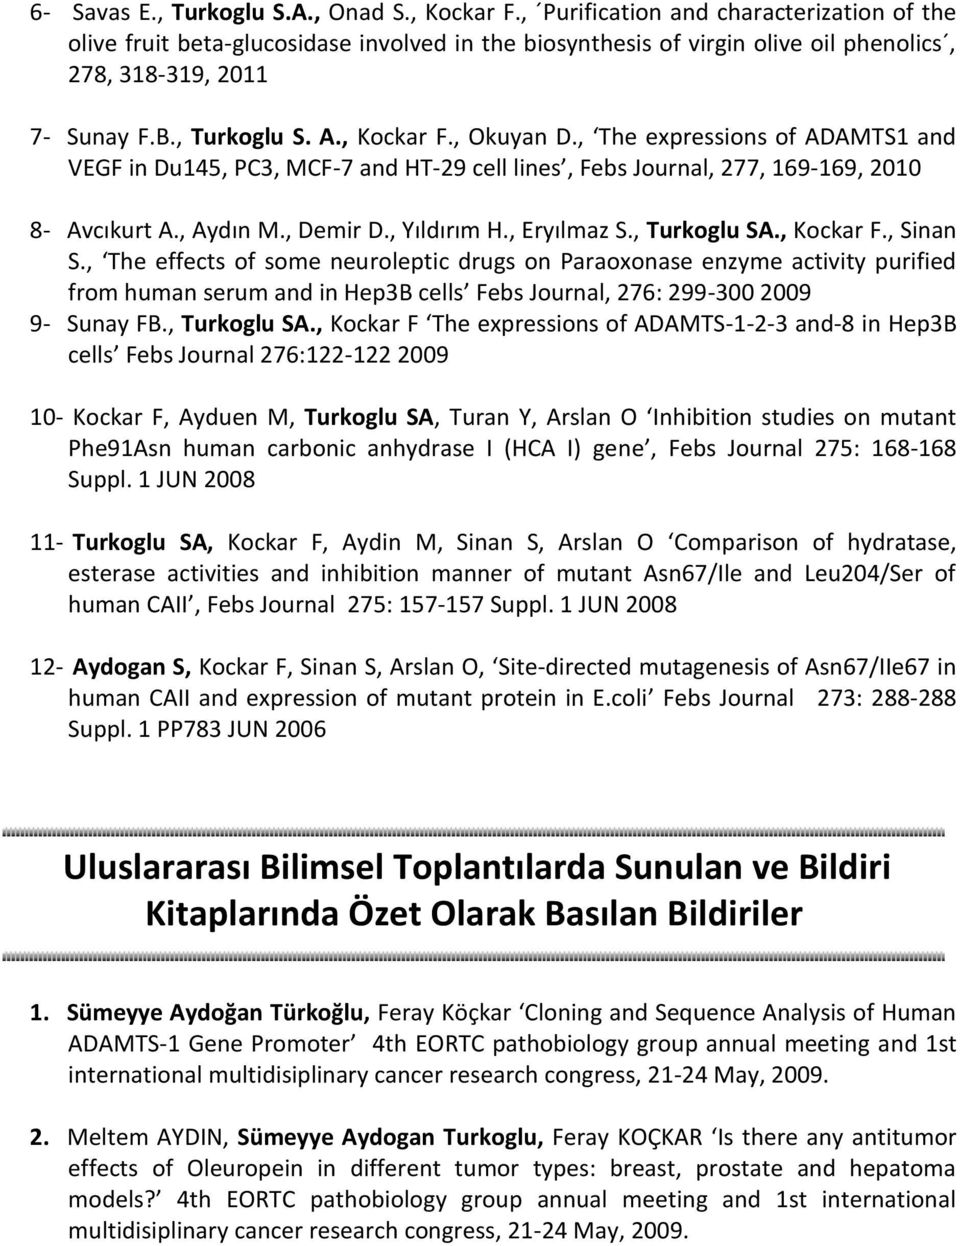 , Okuyan D., The expressions of ADAMTS1 and VEGF in Du145, PC3, MCF-7 and HT-29 cell lines, Febs Journal, 277, 169-169, 2010 8- Avcıkurt A., Aydın M., Demir D., Yıldırım H., Eryılmaz S., Turkoglu SA.